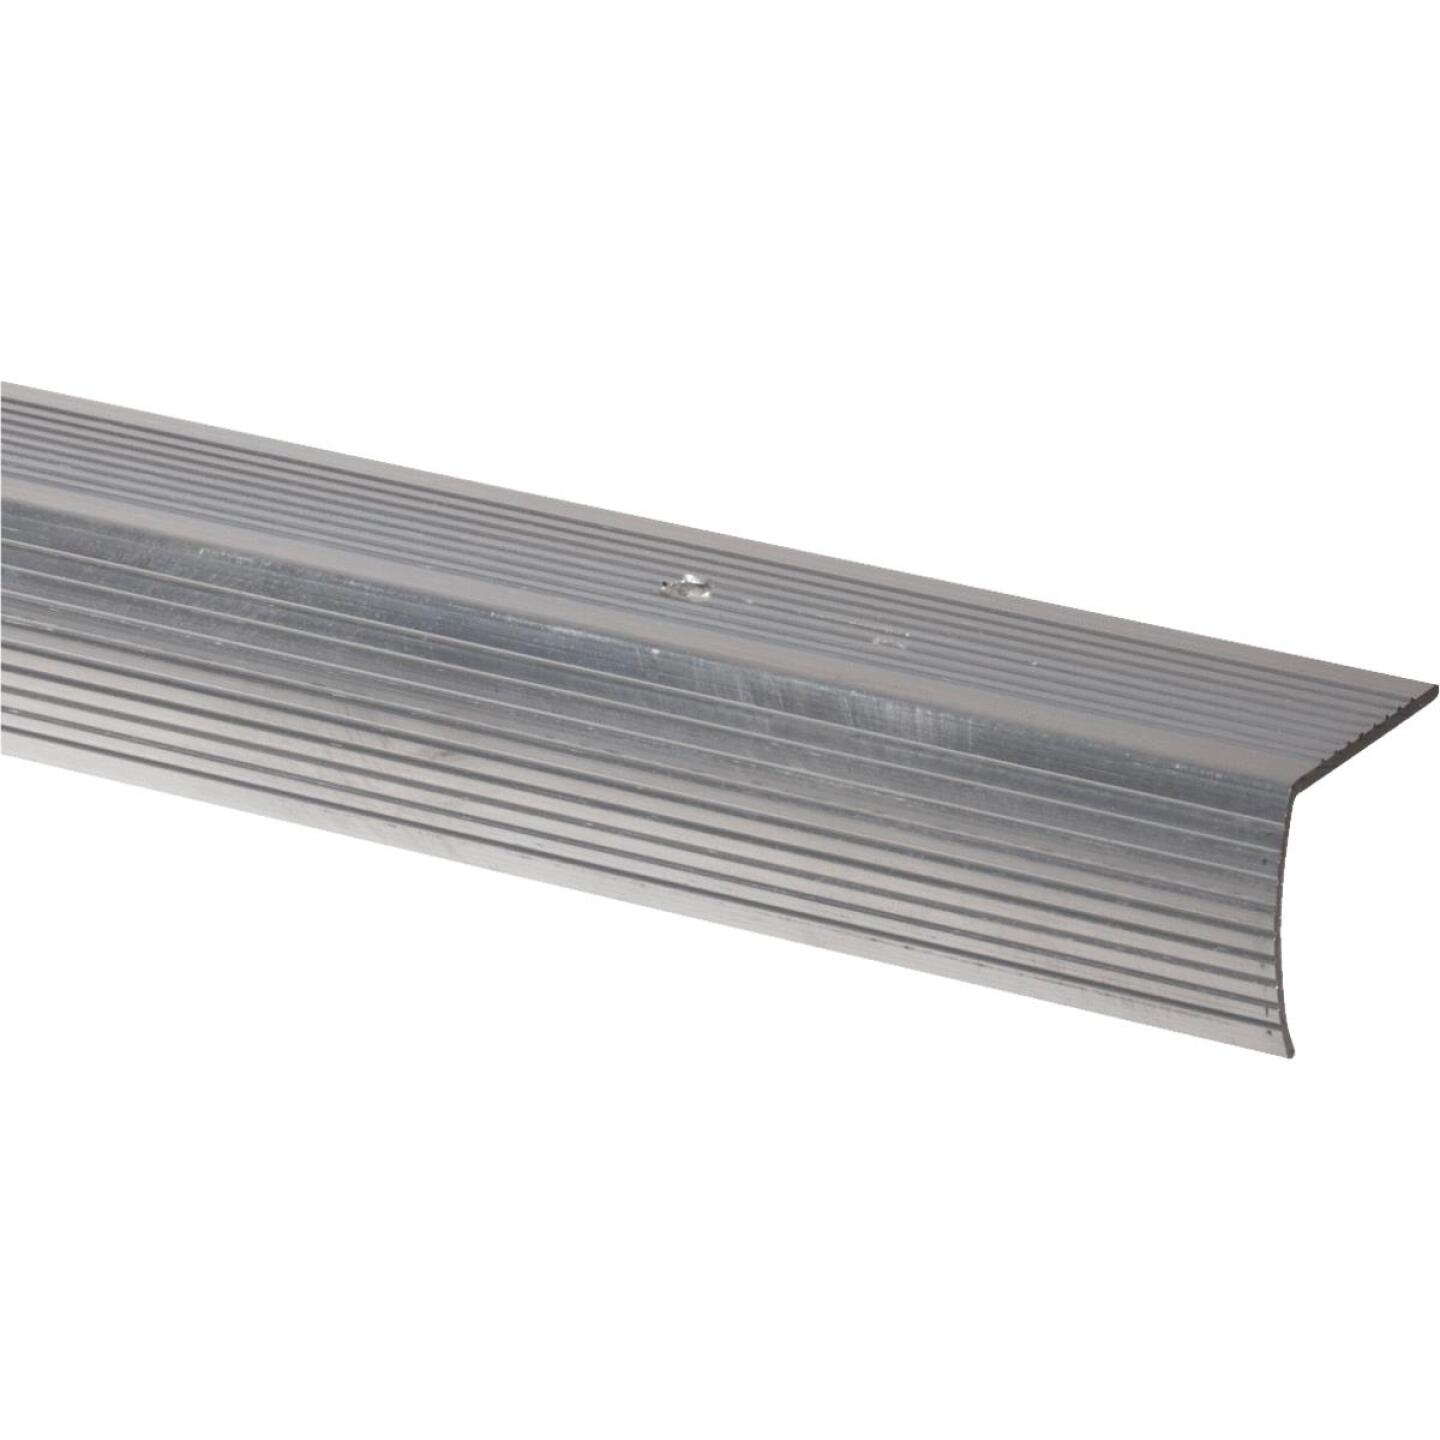 Do it Satin Silver 1-1/8 In. W x 72 In. L Aluminum Stairnose Image 1